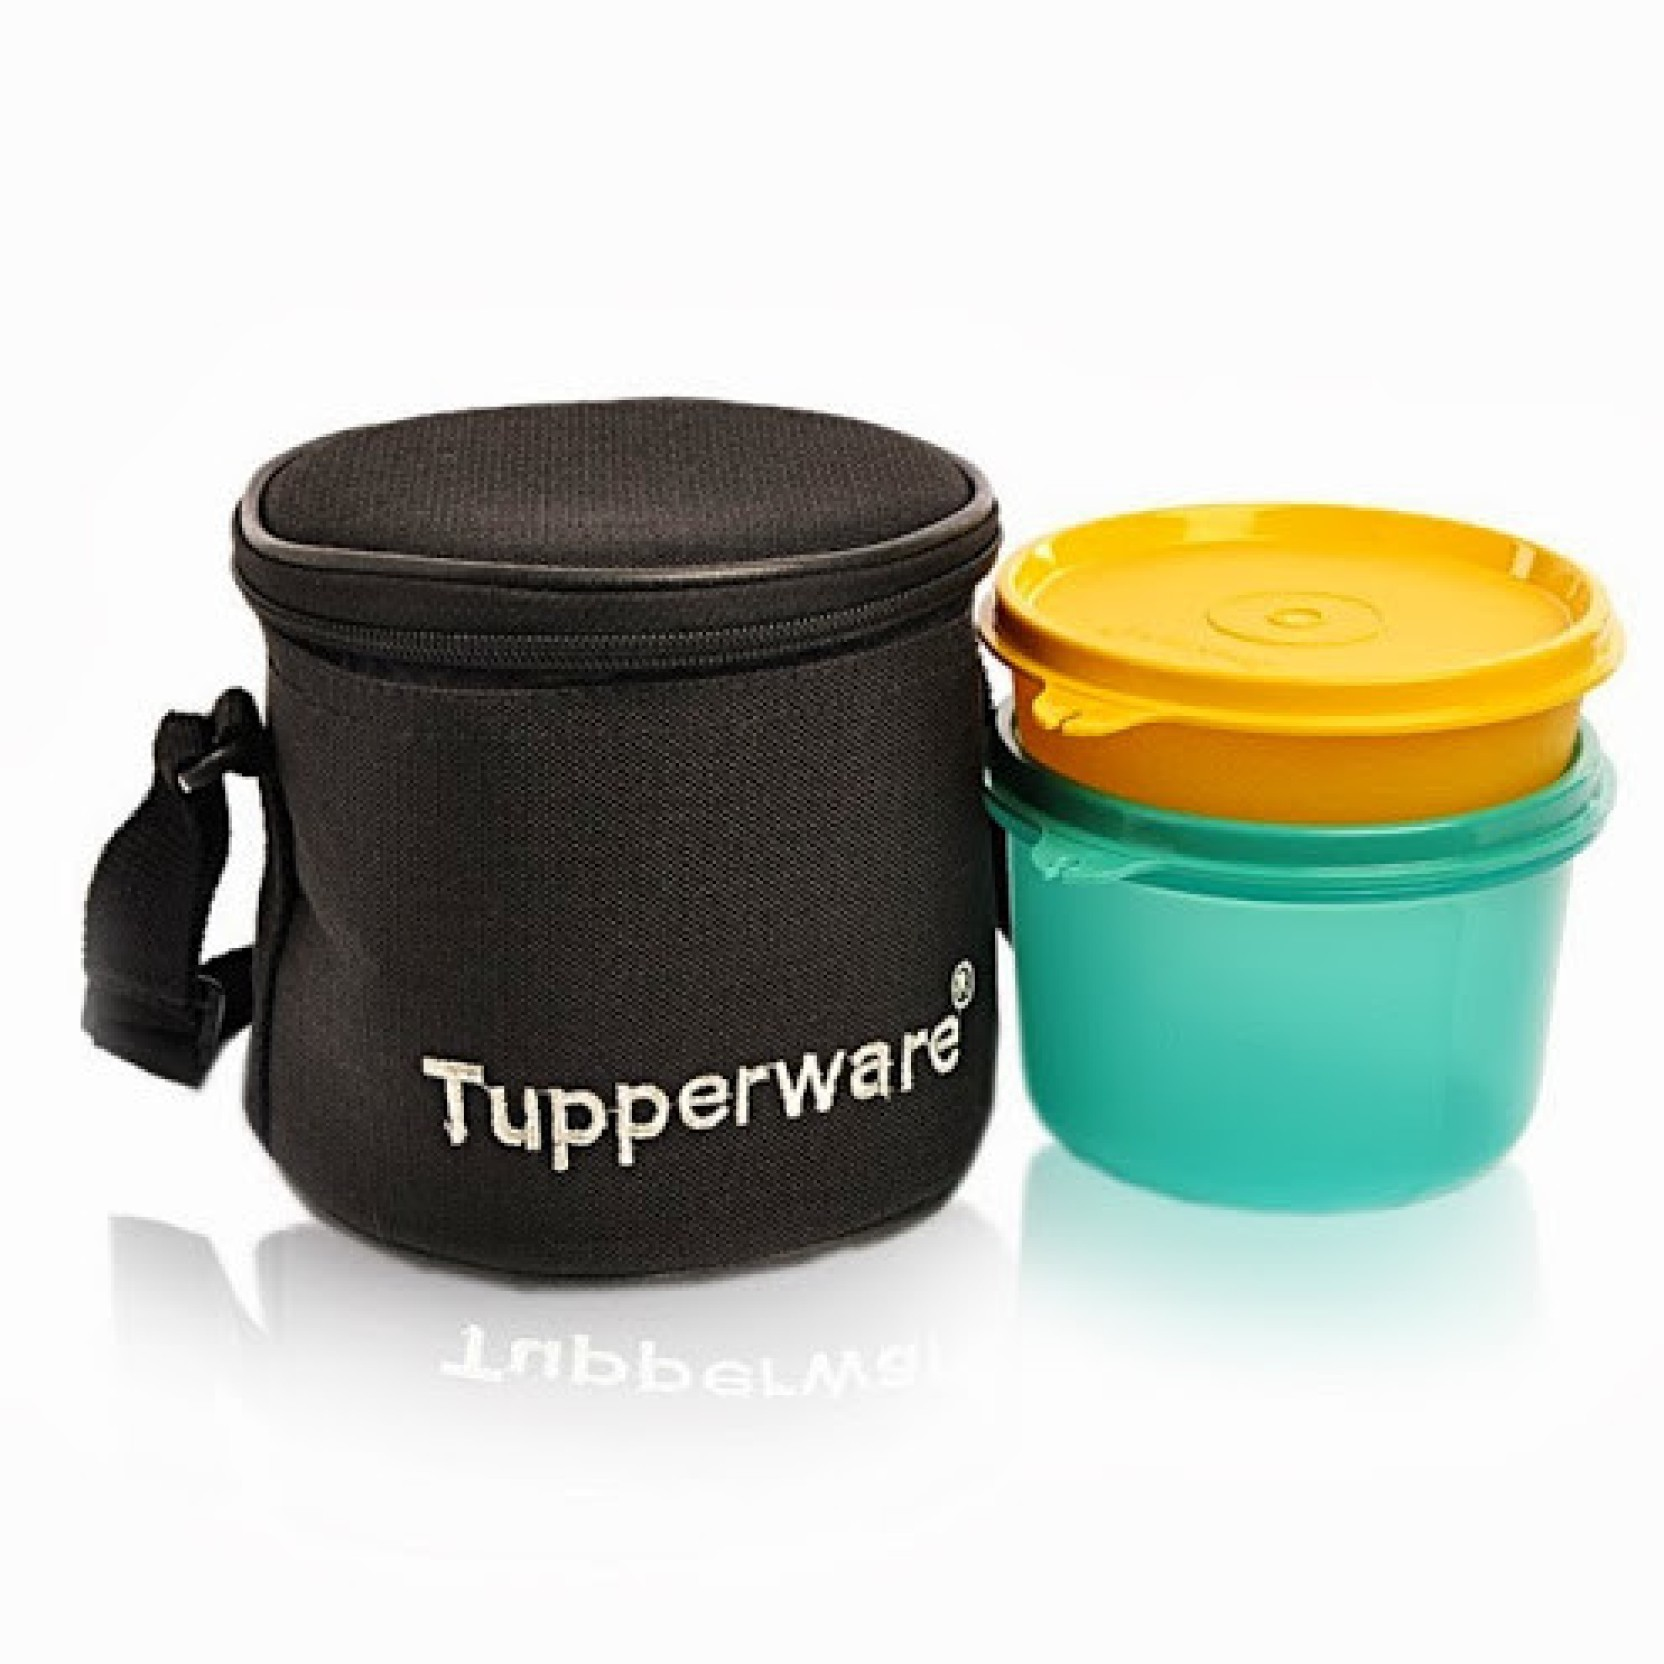 tupperware junior executive 2 containers. Black Bedroom Furniture Sets. Home Design Ideas